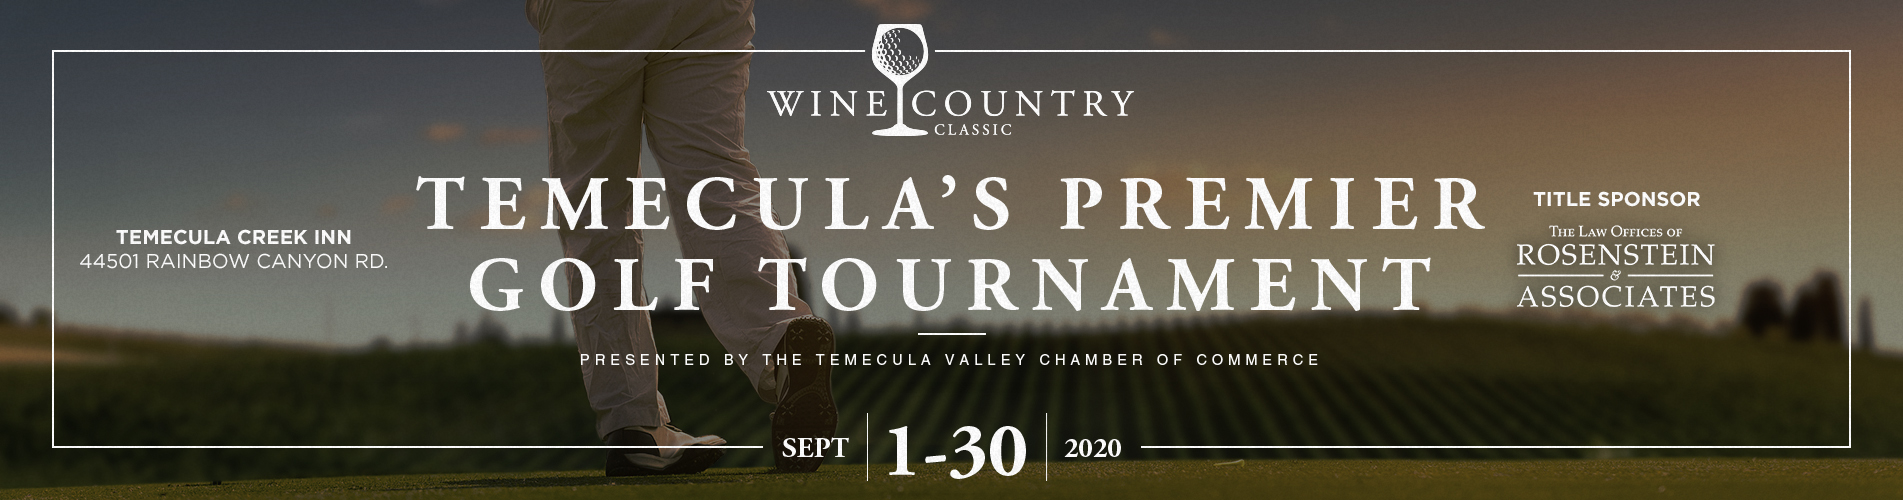 TVCC_2020_Wine_Country_Classic_Web_Slider_v3